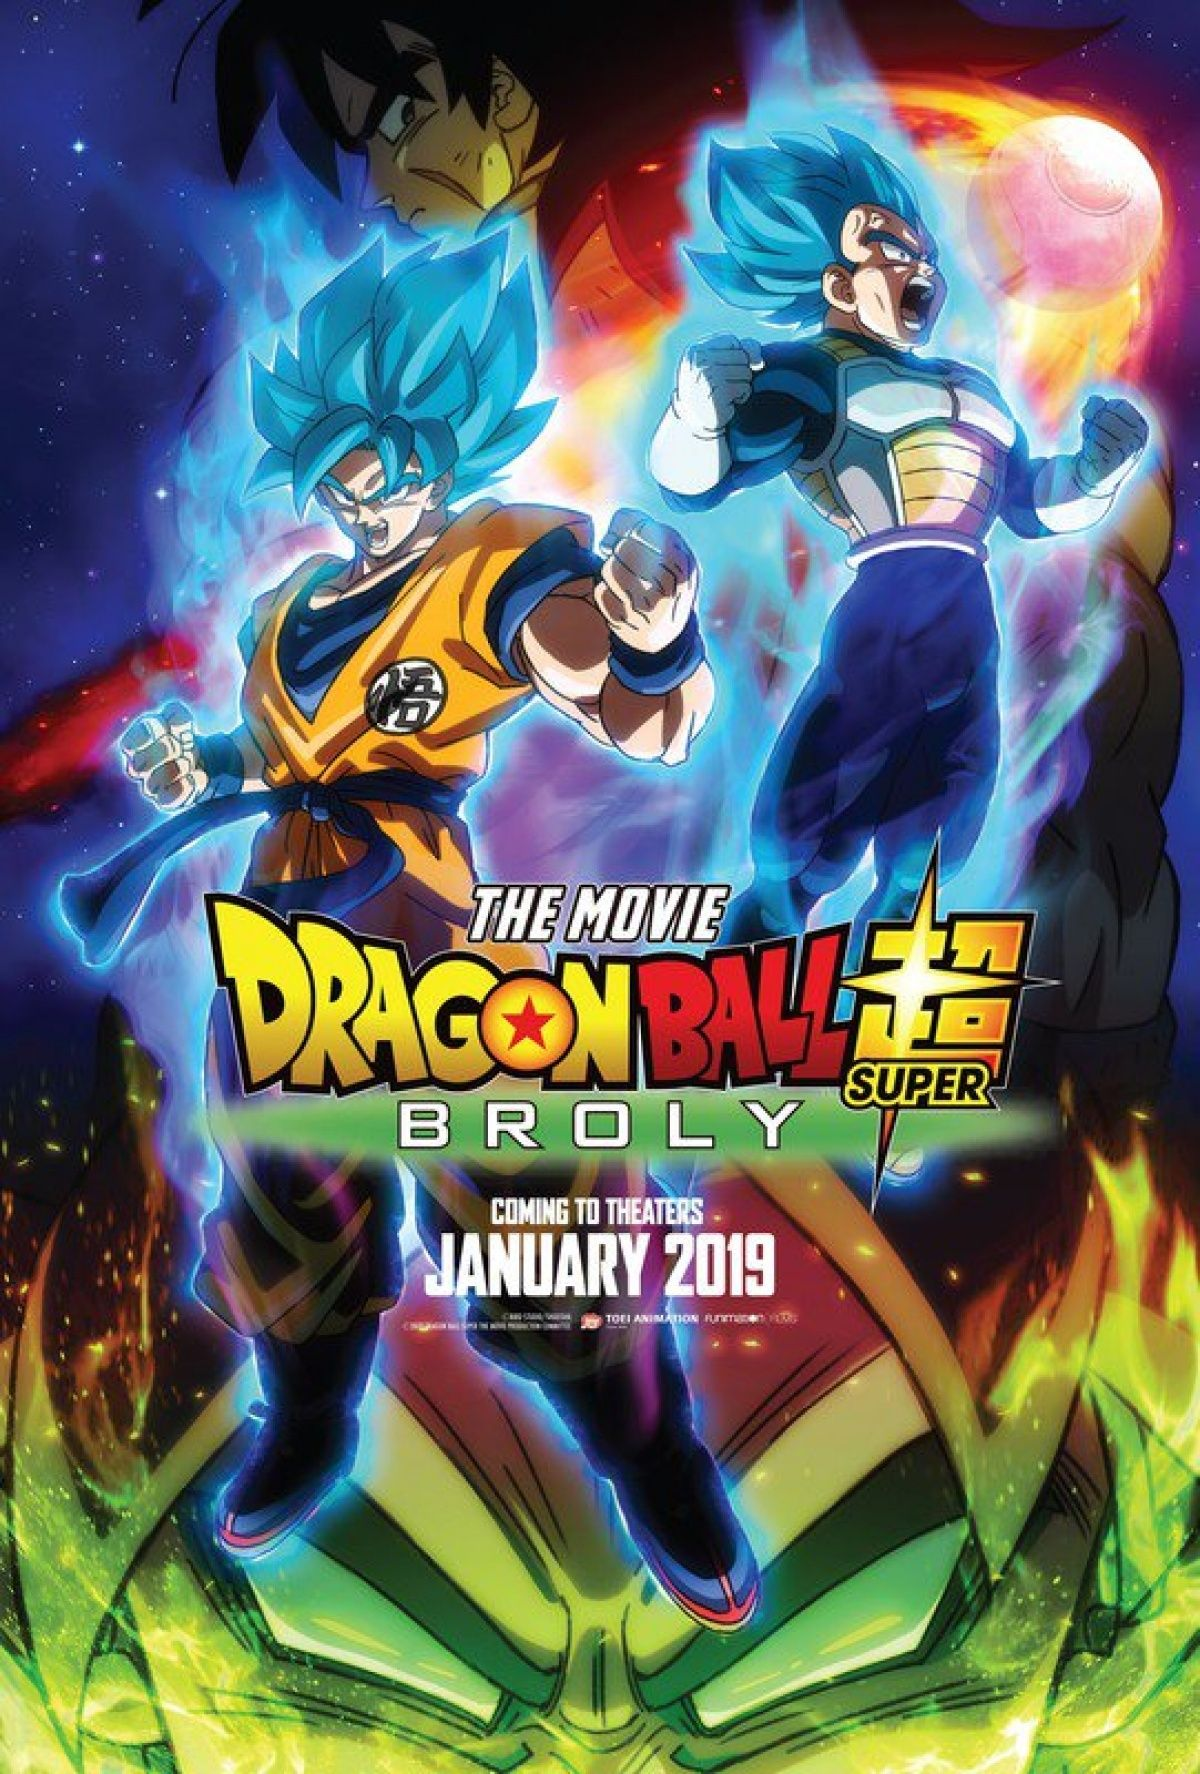 Dragon Ball Super Broly Movie Goku Battles A Powerful Saiyan In New Trailer Dragon Ball Super Super Movie Broly Movie